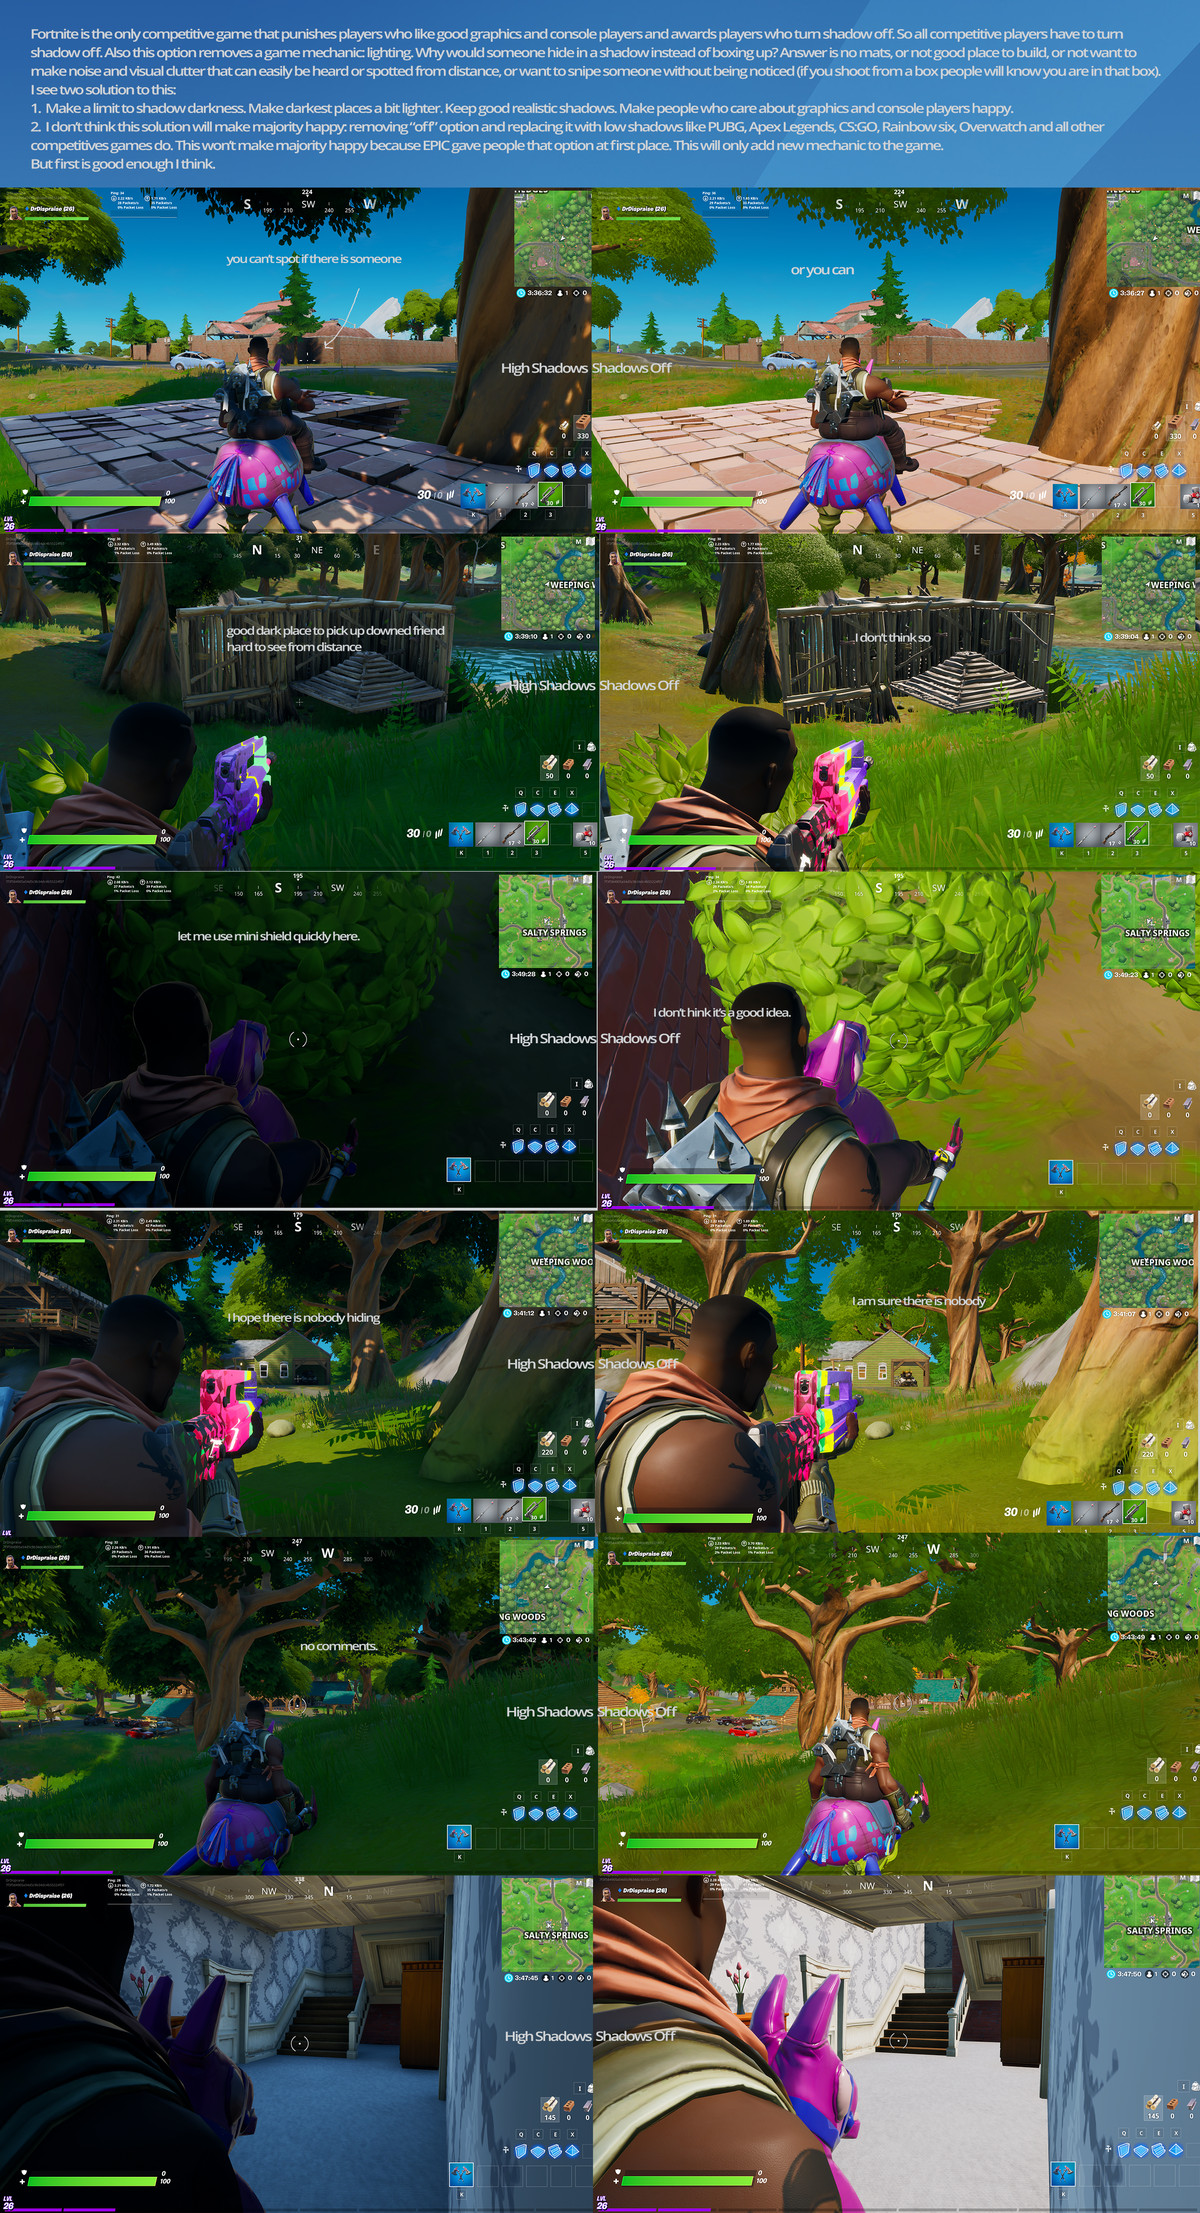 Comparing and contrasting visibility options in Fortnite for PC and consoles.